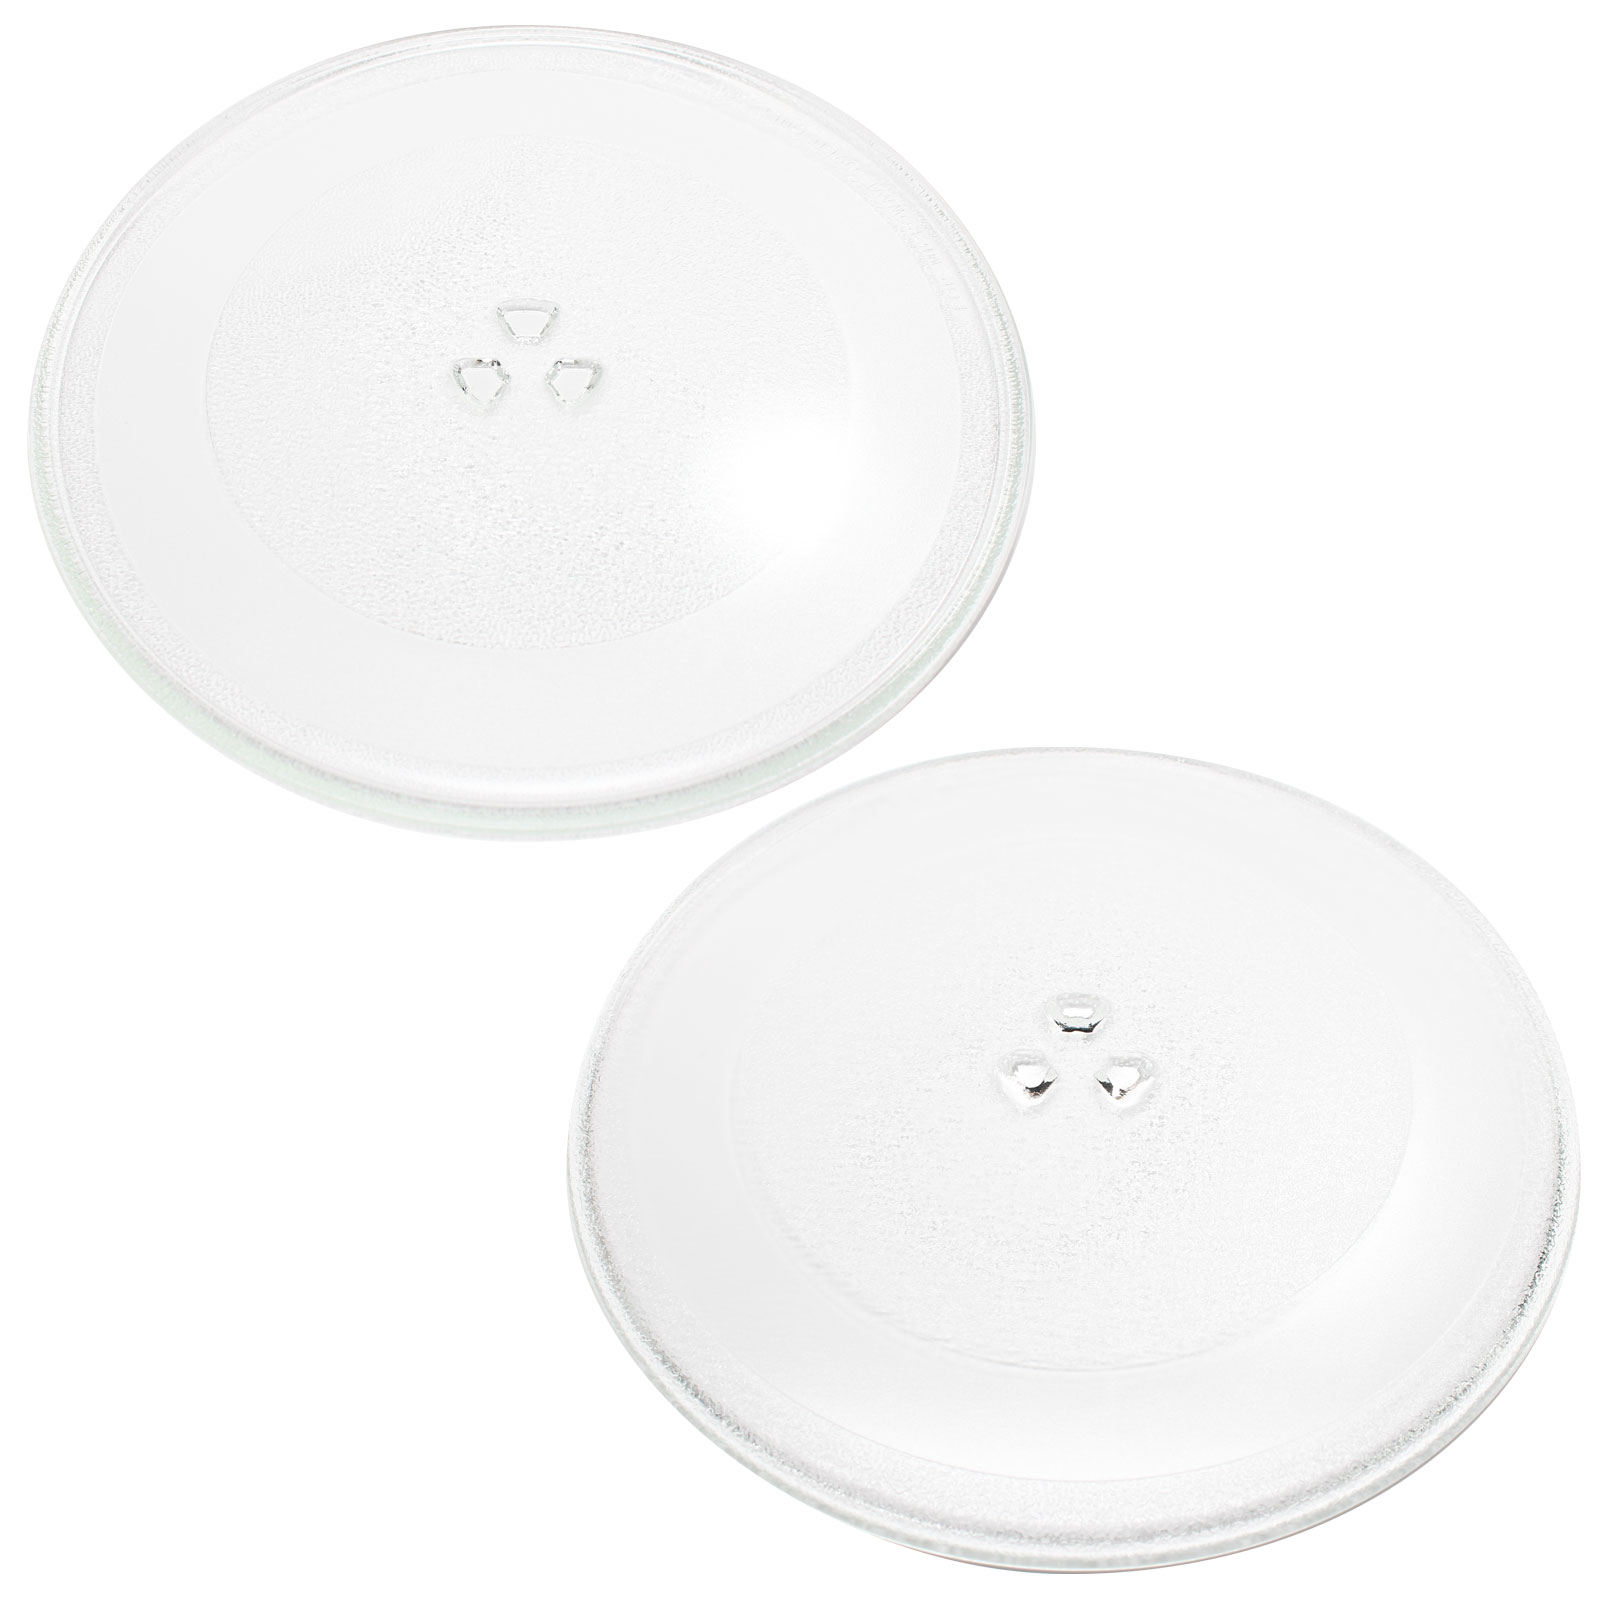 UpStart 2-Pack Replacement 1B71961 Microwave Turntable Gl...